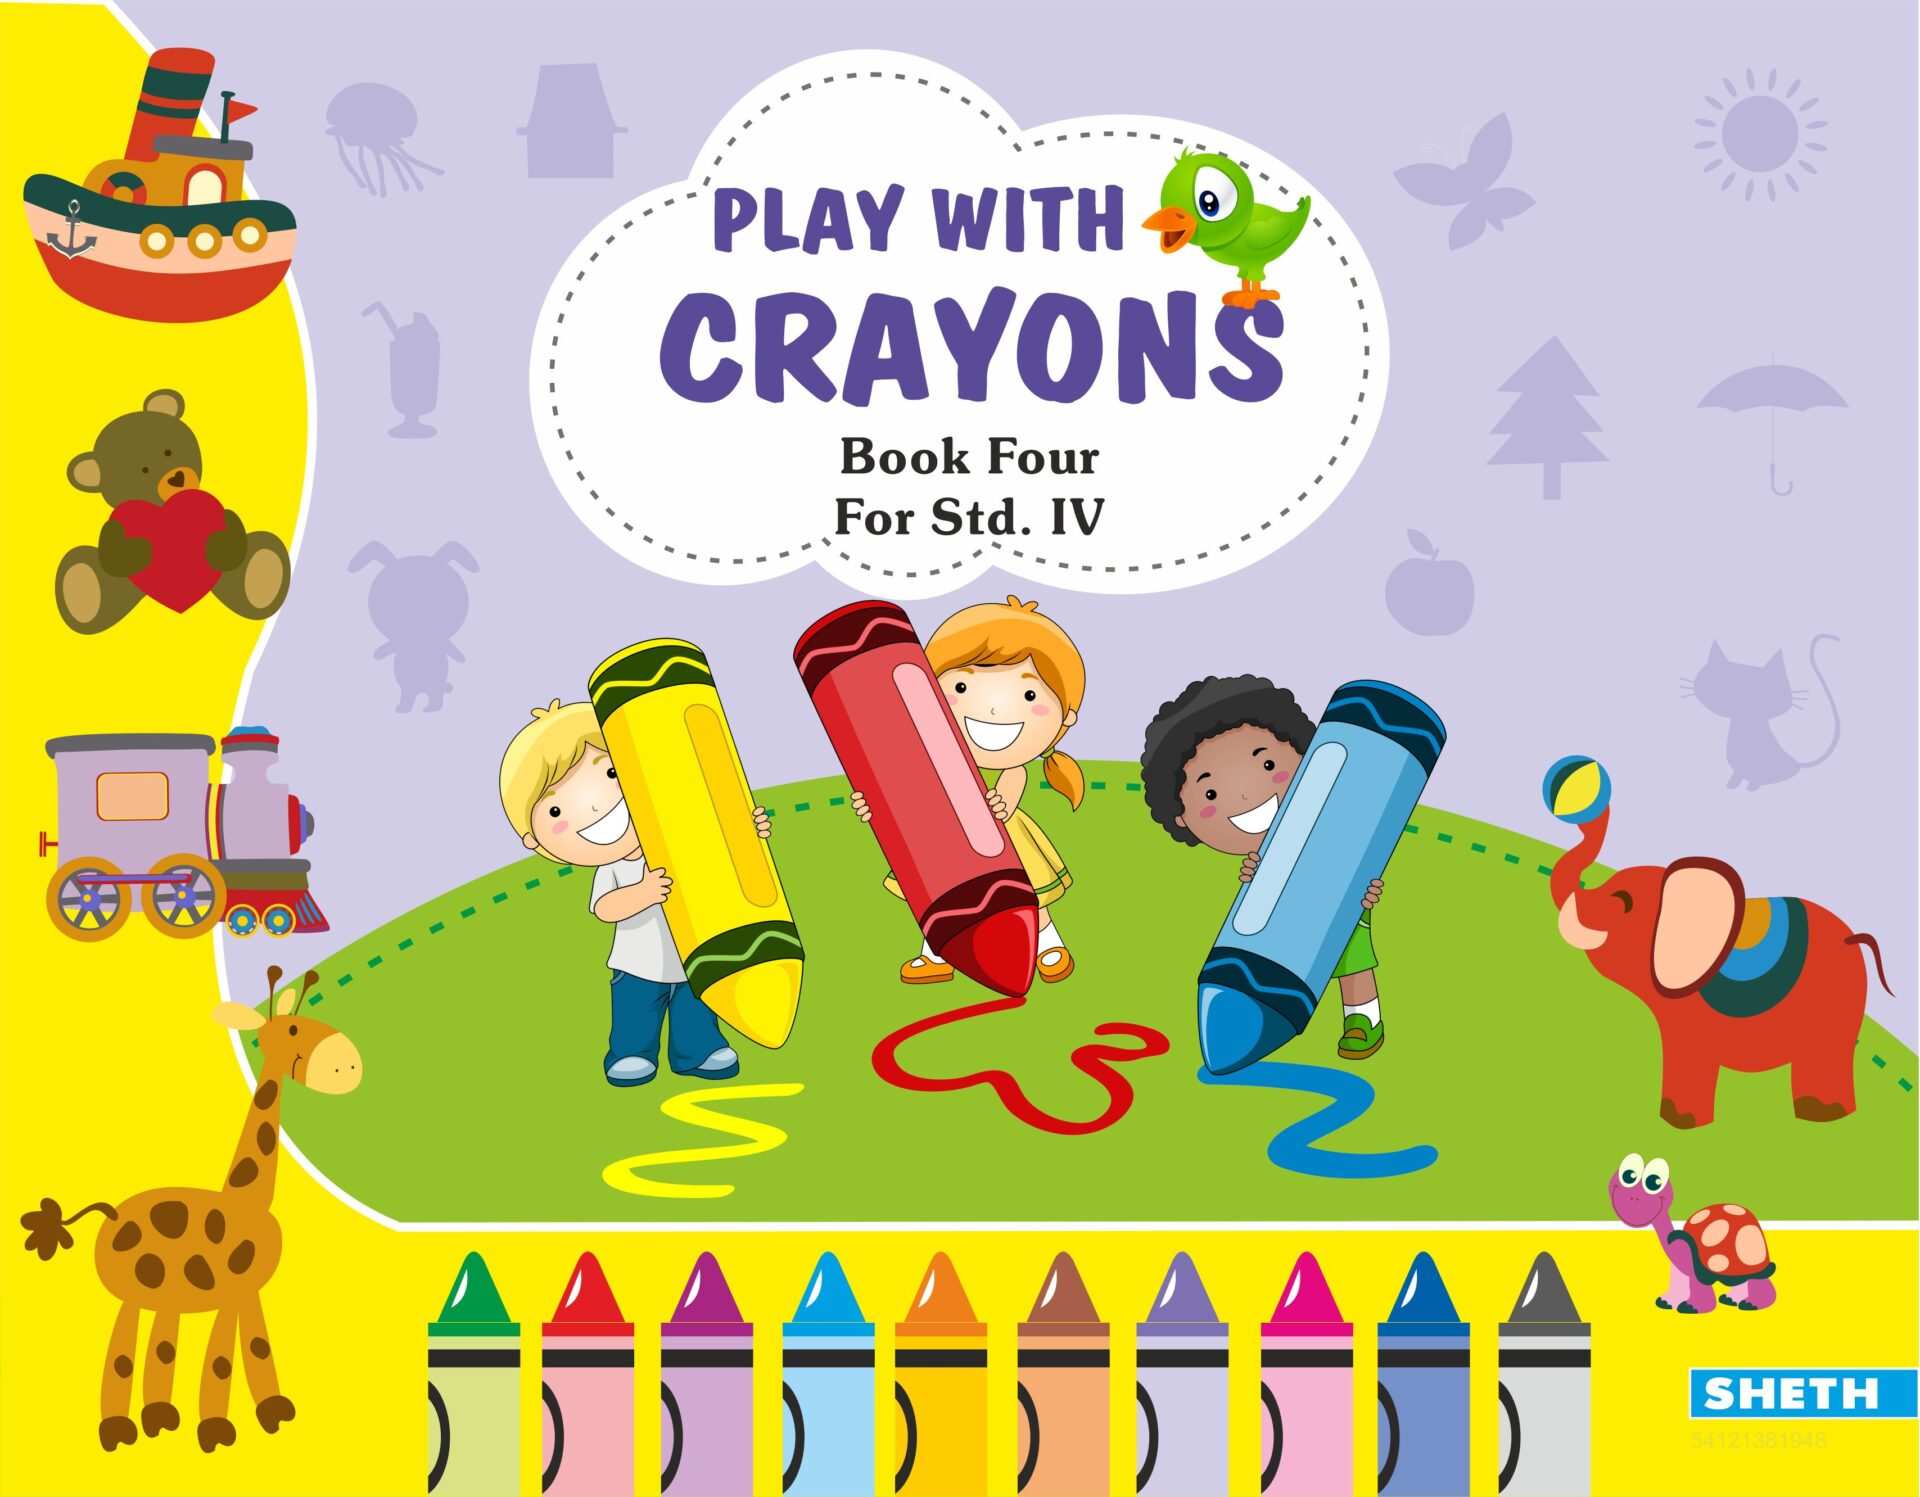 Sheth Books Play with Crayons Book 4 for Std. IV 1